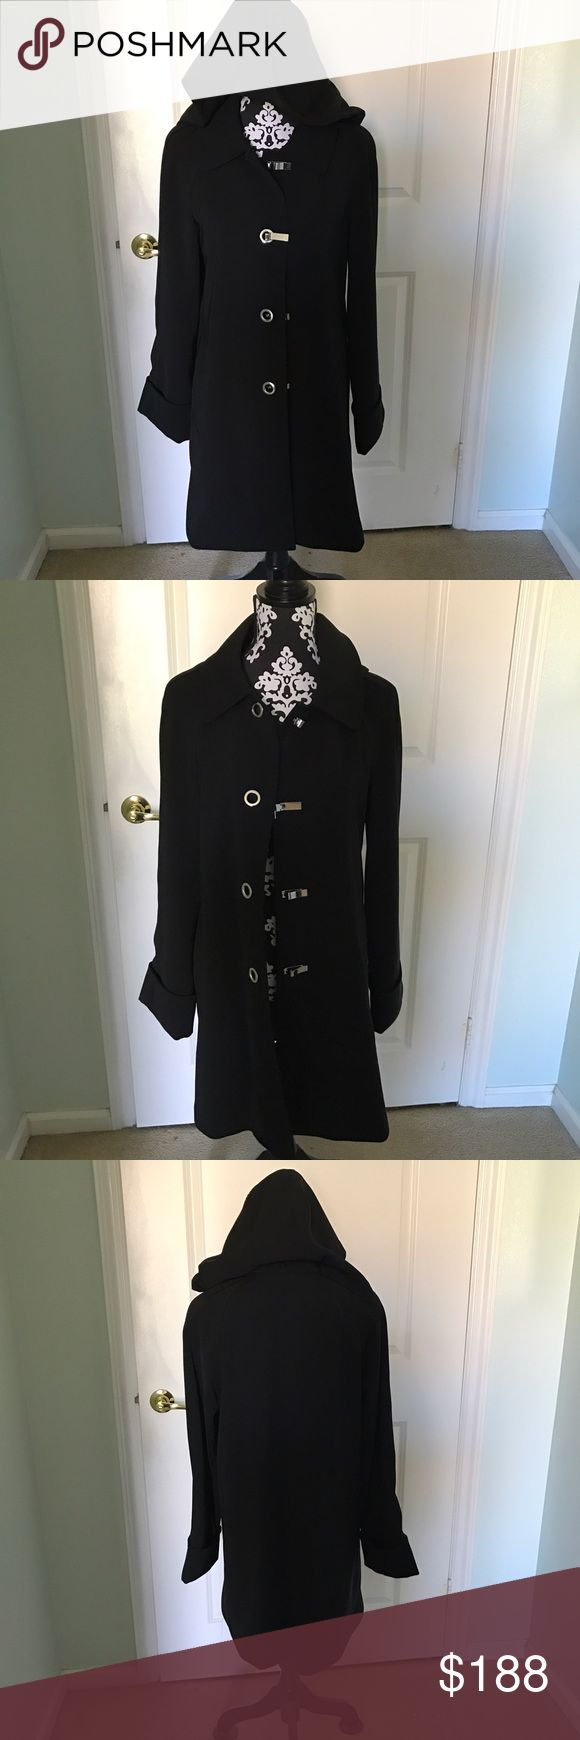 Michael Kors Hooded Trench coat NWOT Like new never worn. Has a buttoned detachable hood, silver hardware all buttons in tack and cuffed arms. No flaws Michael Kors Jackets & Coats Trench Coats